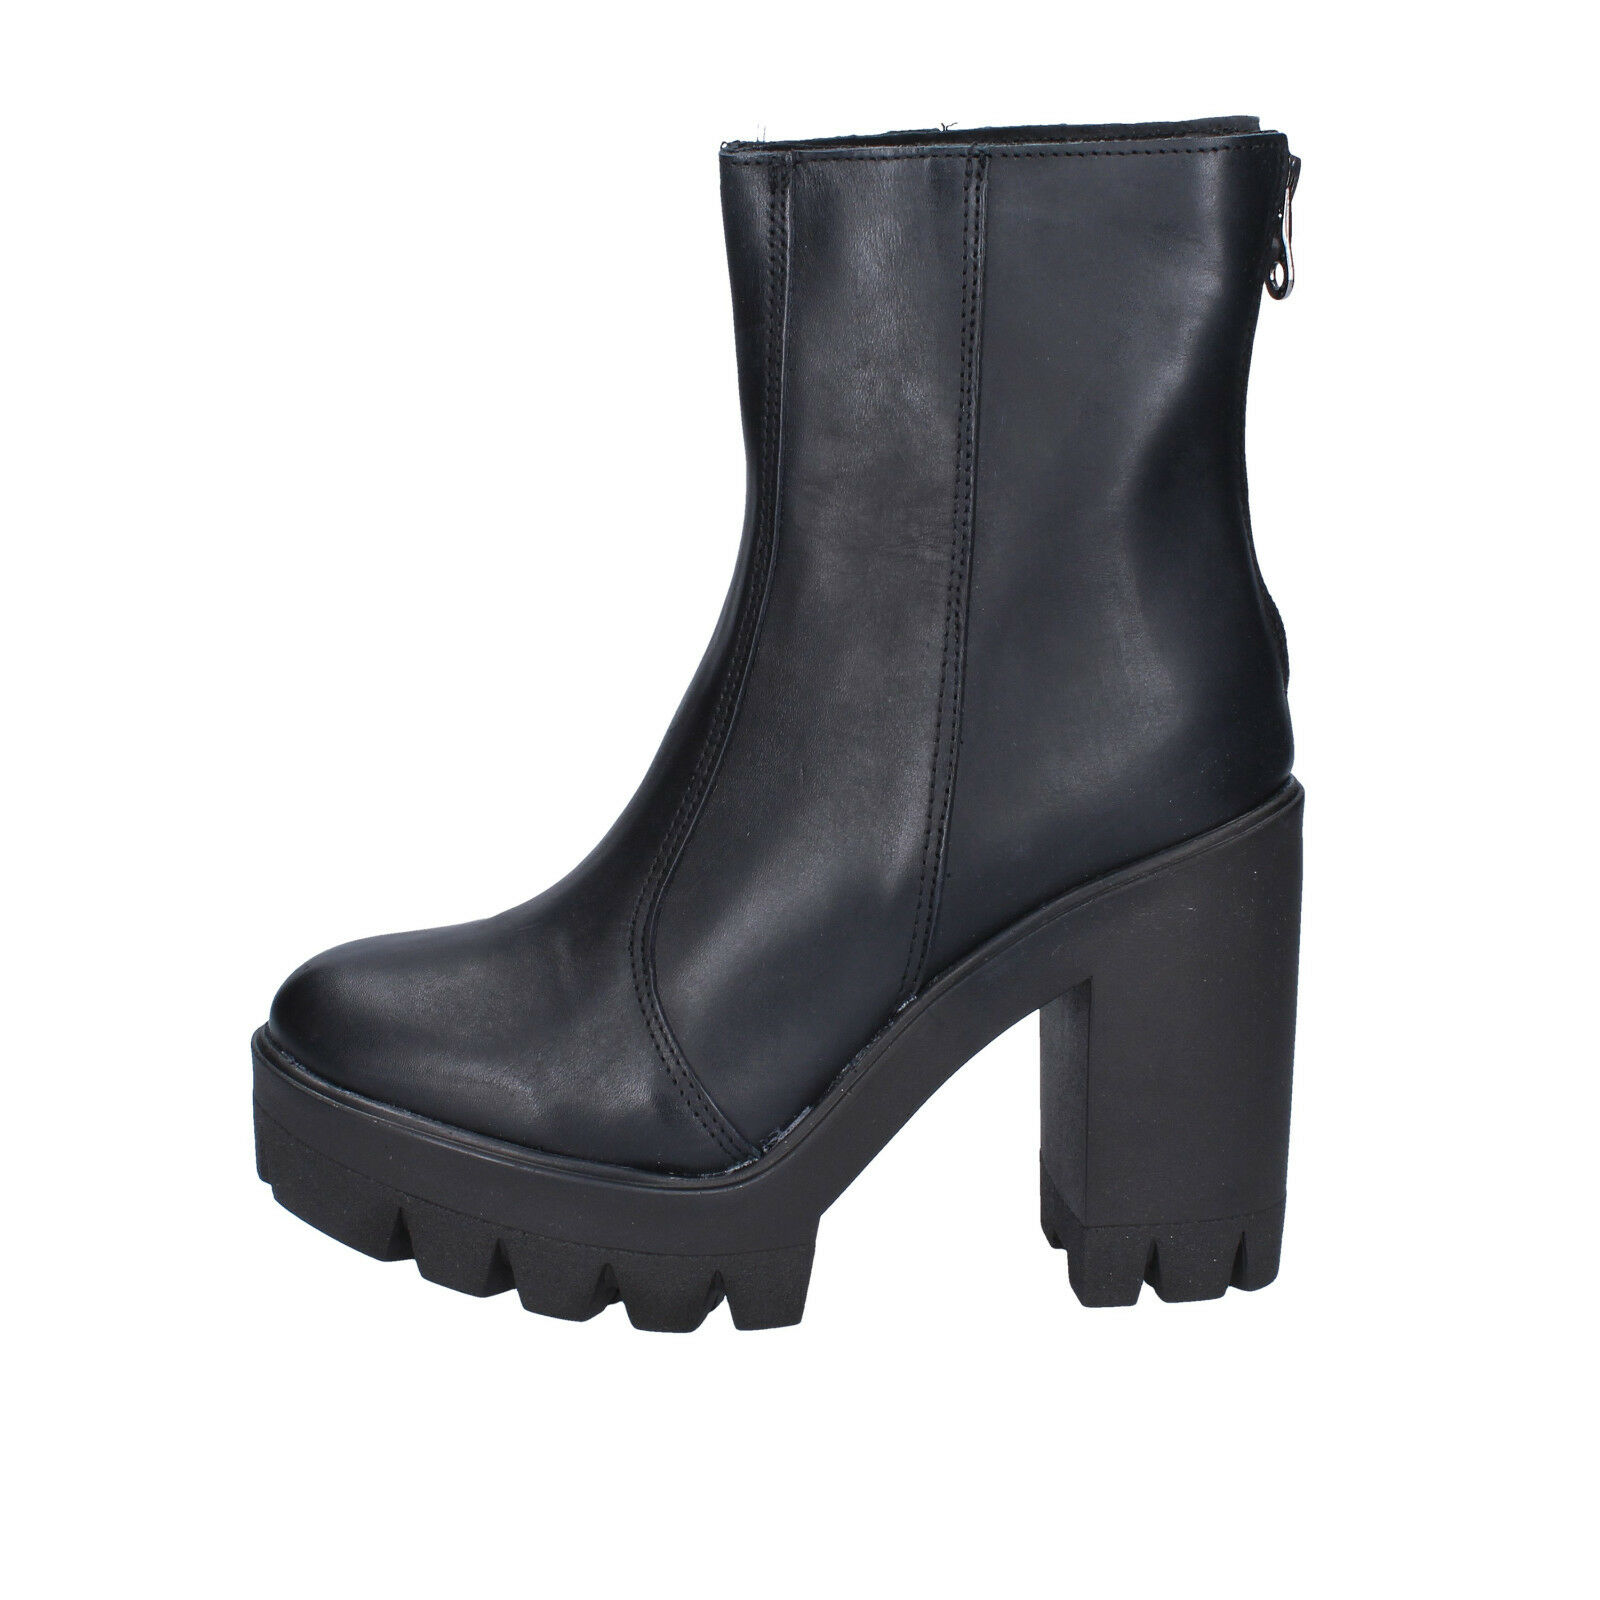 womens shoes boots MADE IN ITALY 2 (EU 35) ankle boots shoes black leather BX760-35 6bec03